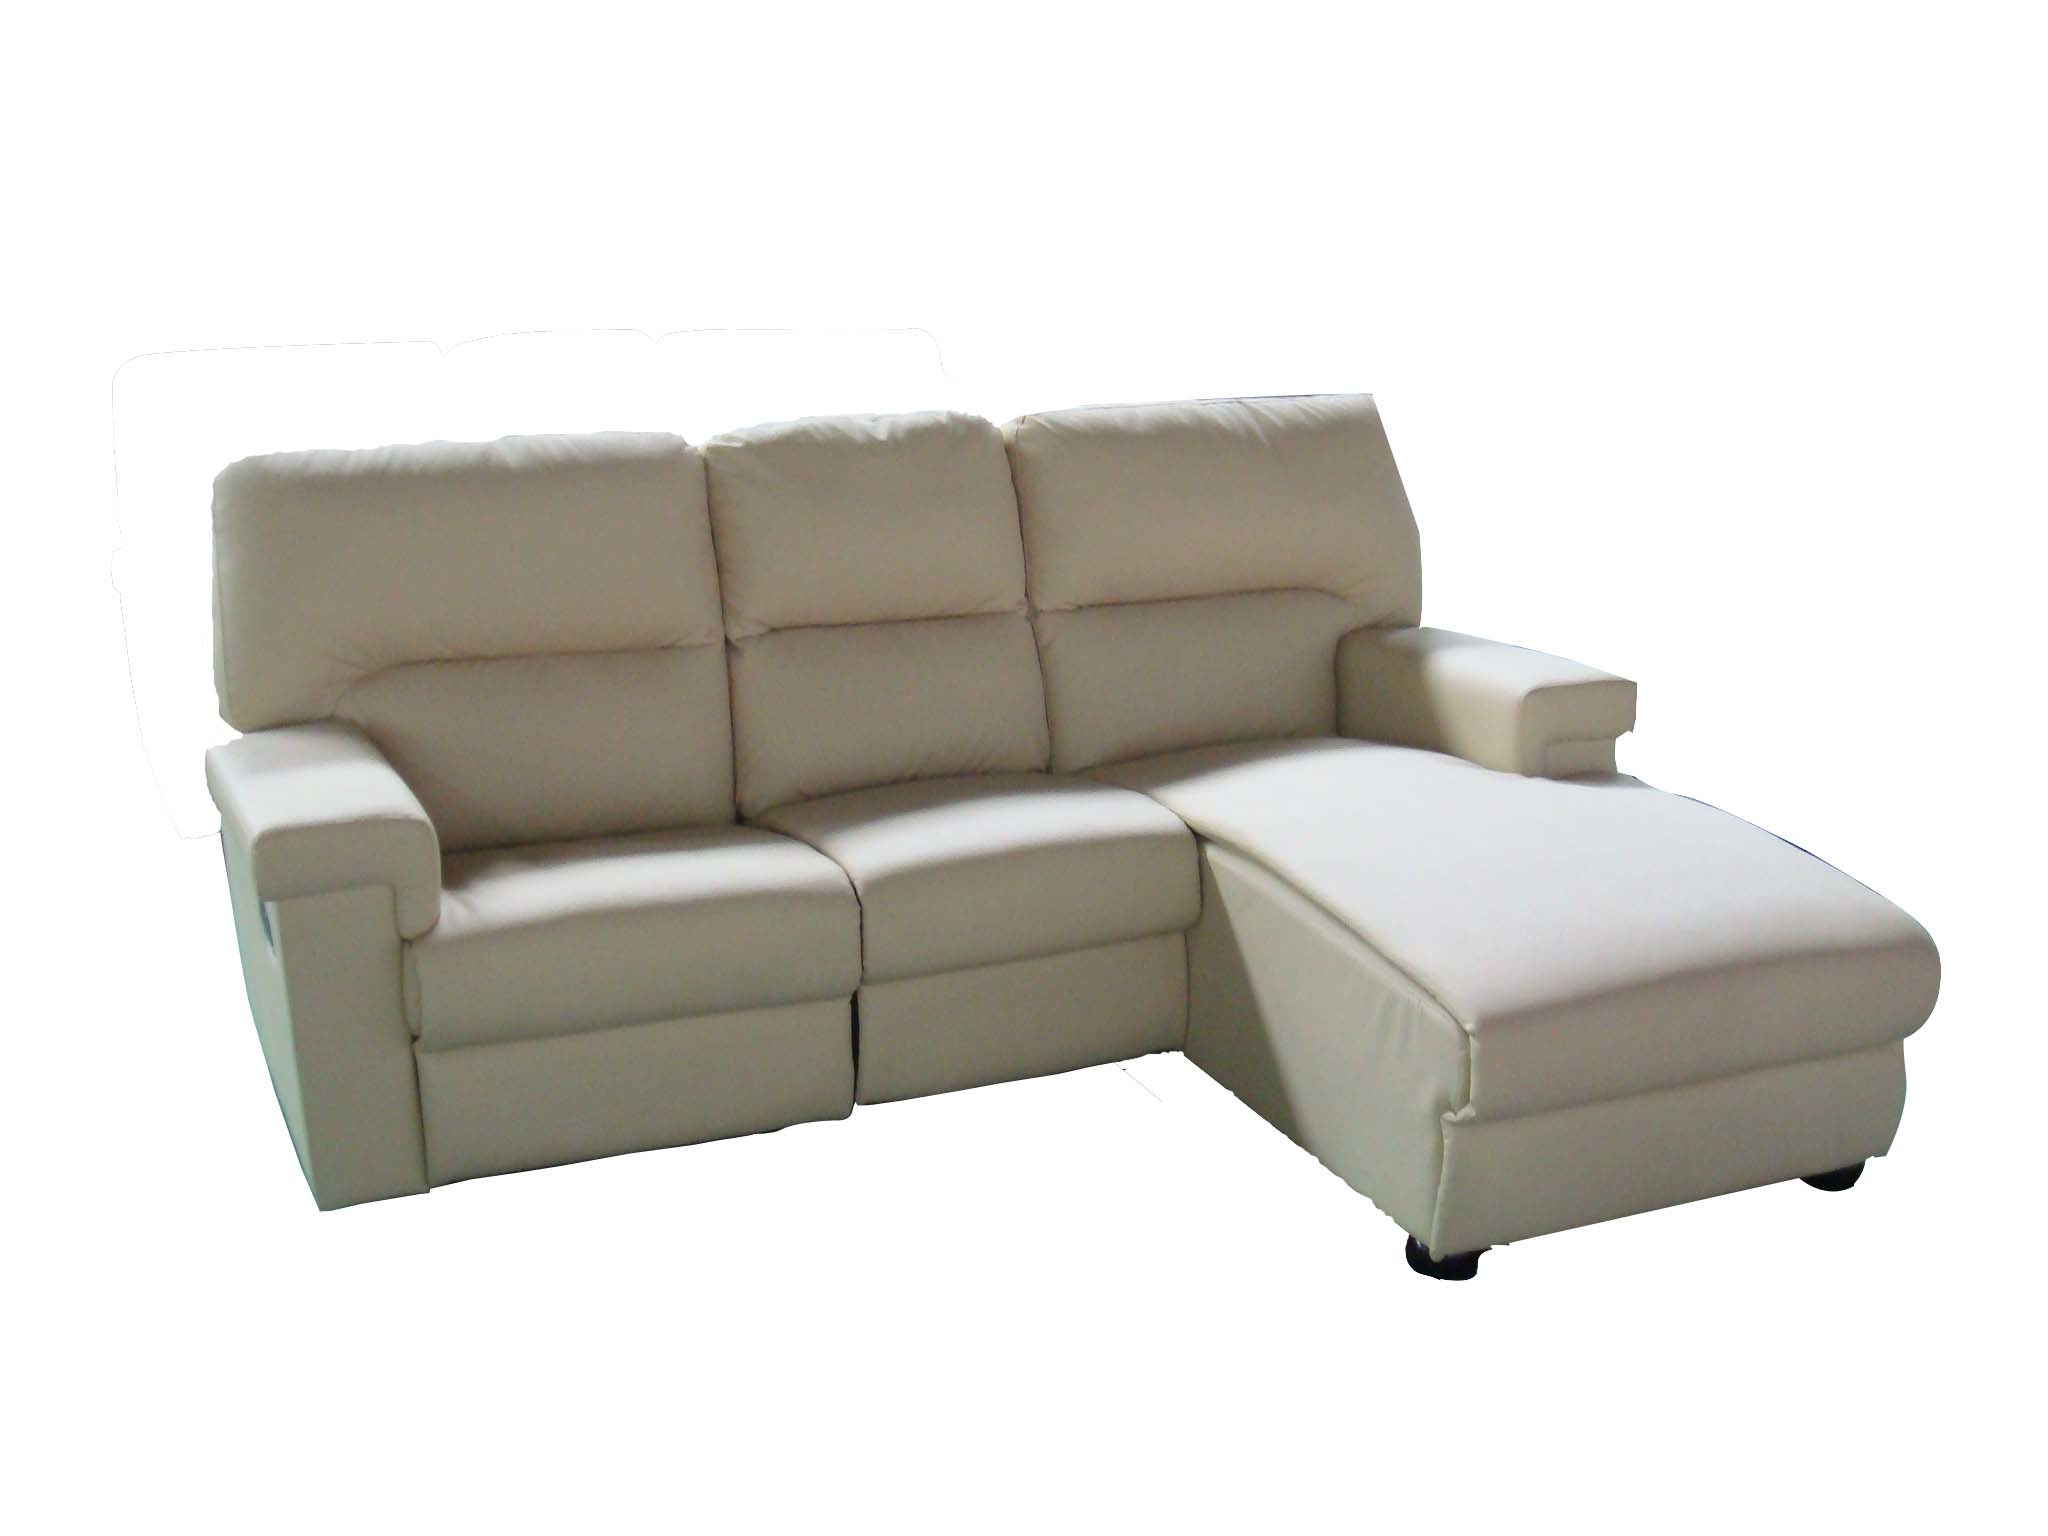 Designer sectional sofa sofa design Contemporary leather sofa